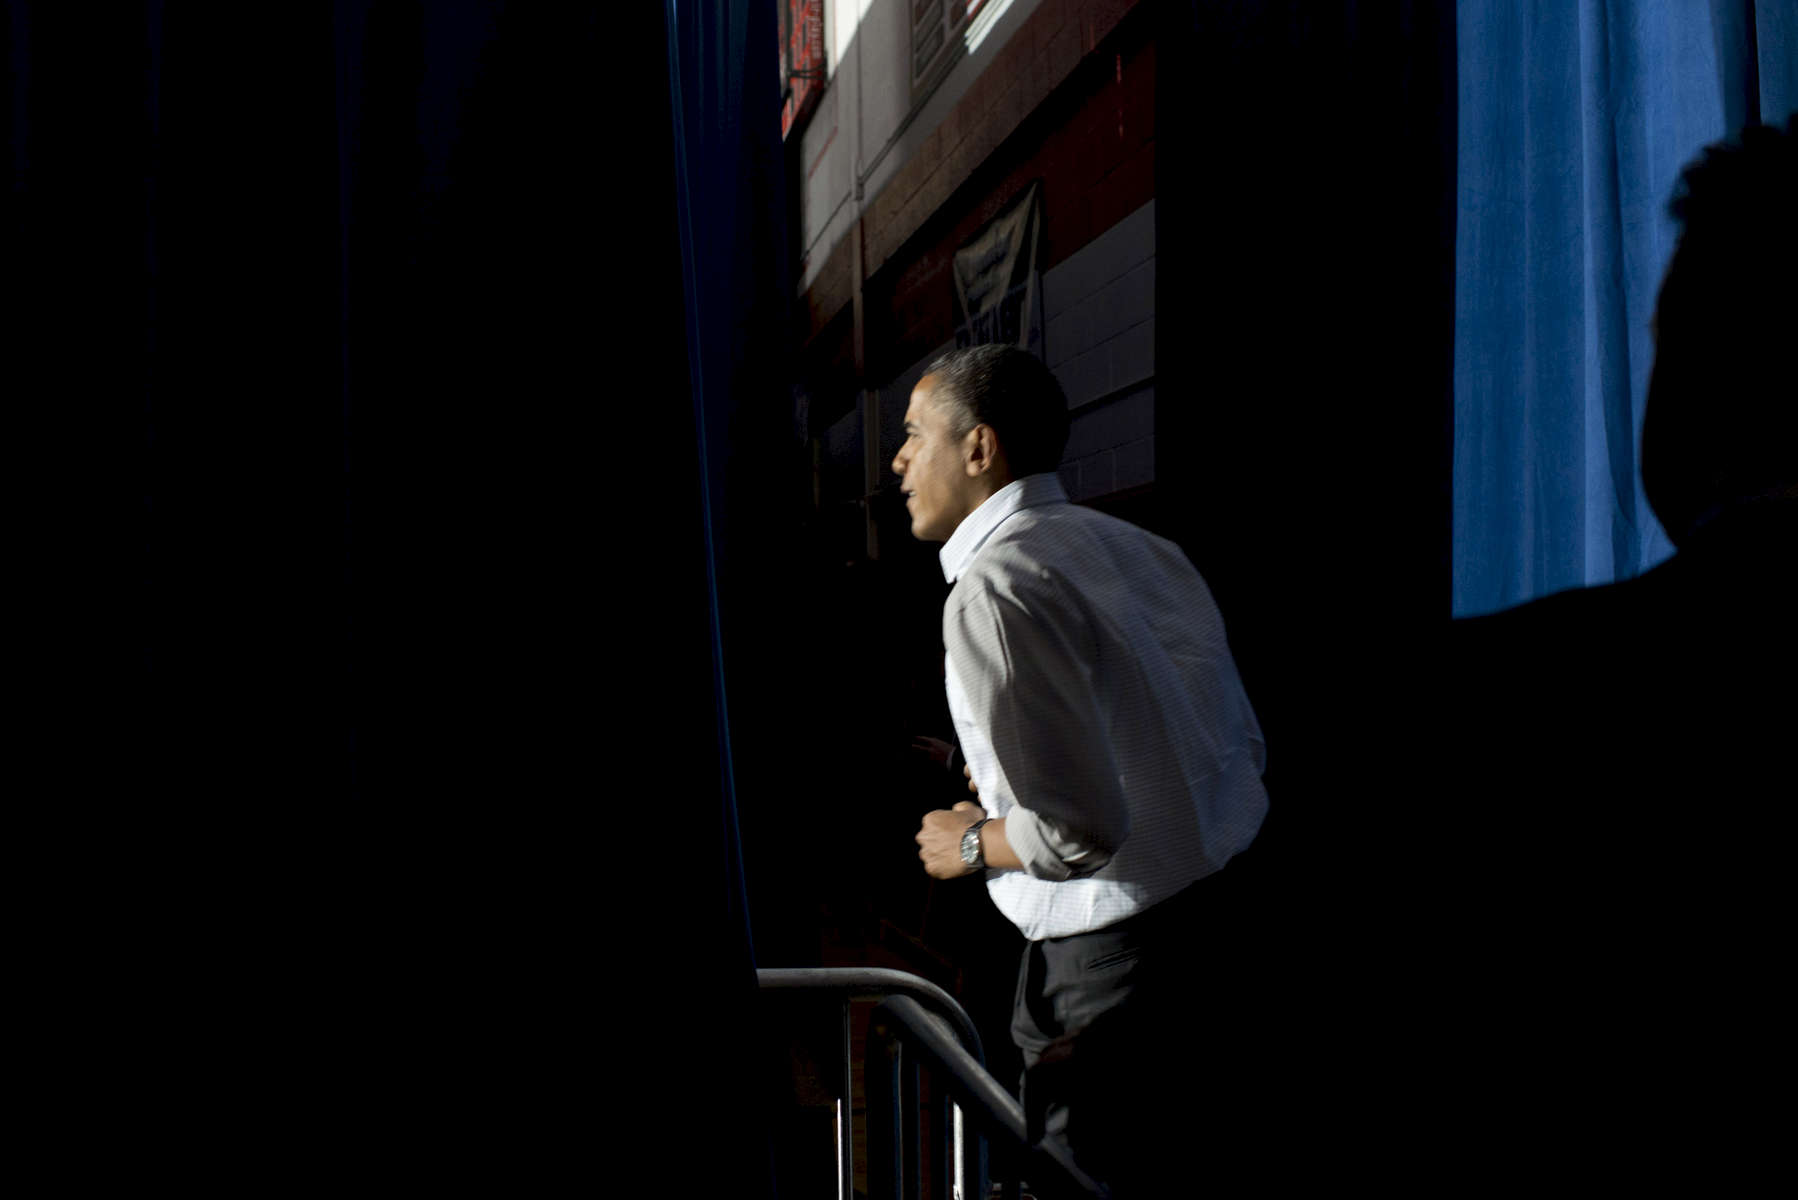 November 3, 2012 - Mentor, OH:  President Barack Obama runs onstage at a campaign event in the small town of Mentor, OH a few days before the 2012 election.  (Scout Tufankjian for Obama for America/Polaris)